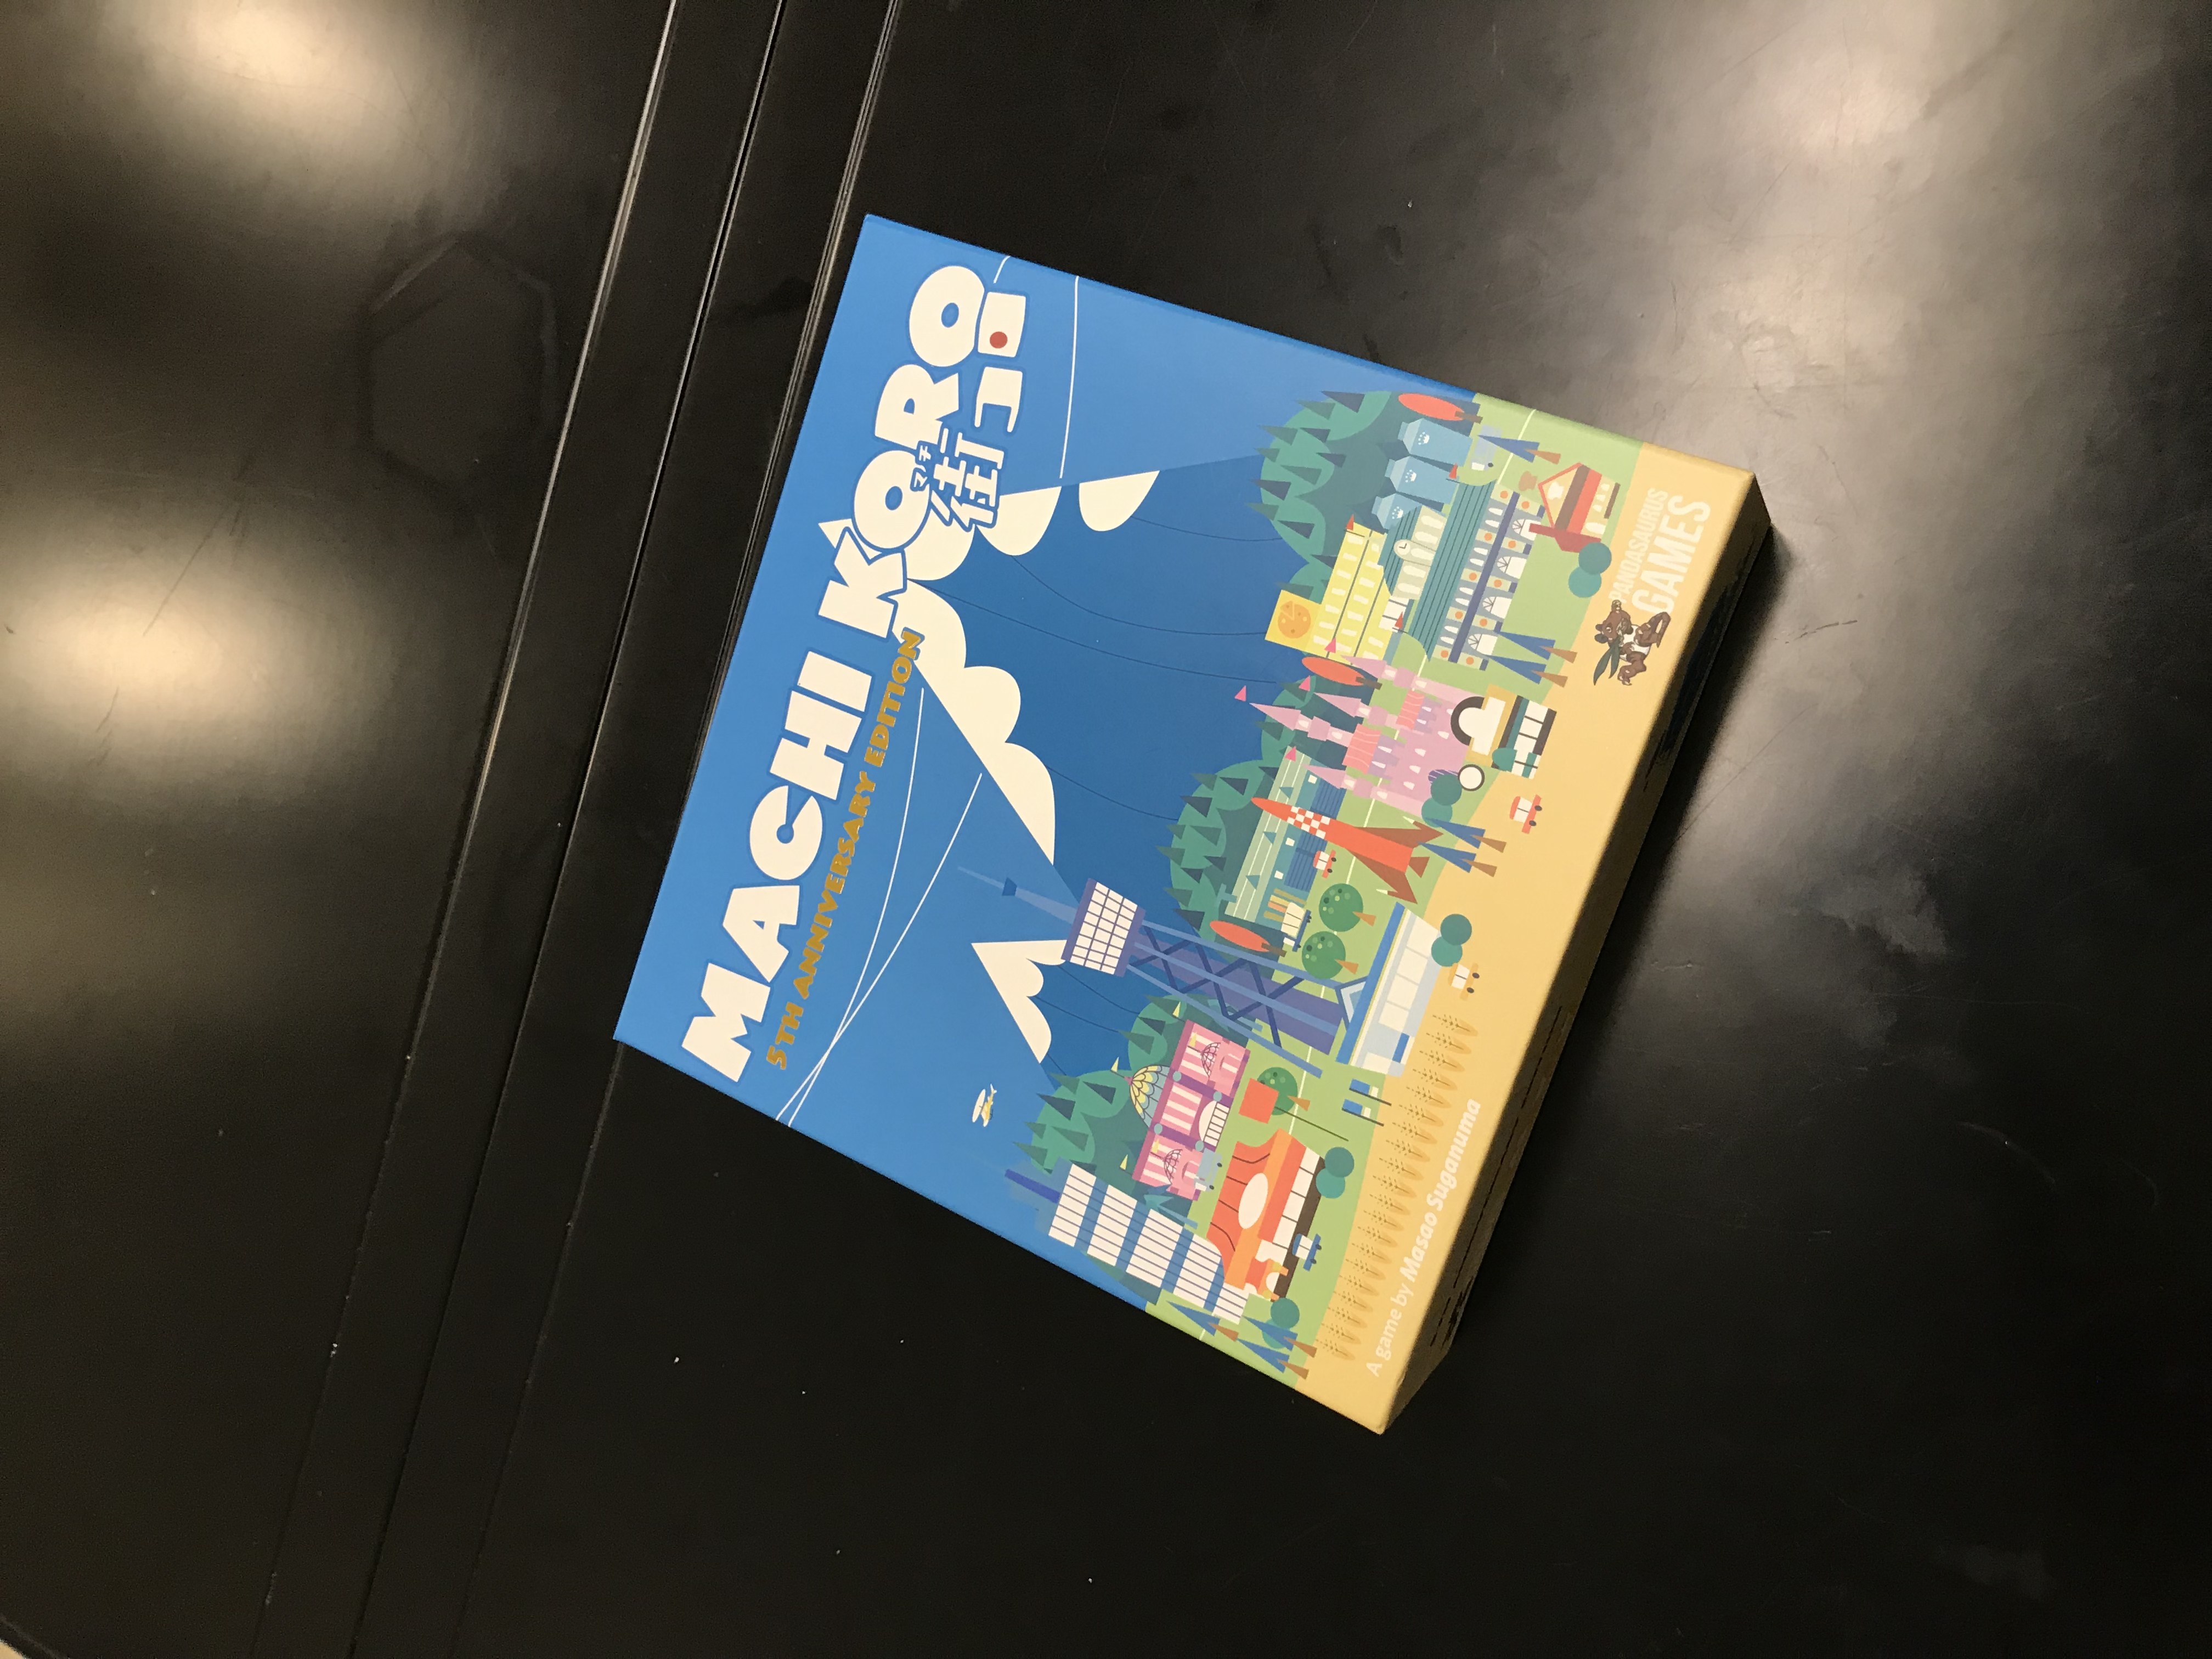 2019-09-23_11.43.18.jpg Download free STL file Machi Koro 5th Anniversary with Expansions • Model to 3D print, Hardcore3D